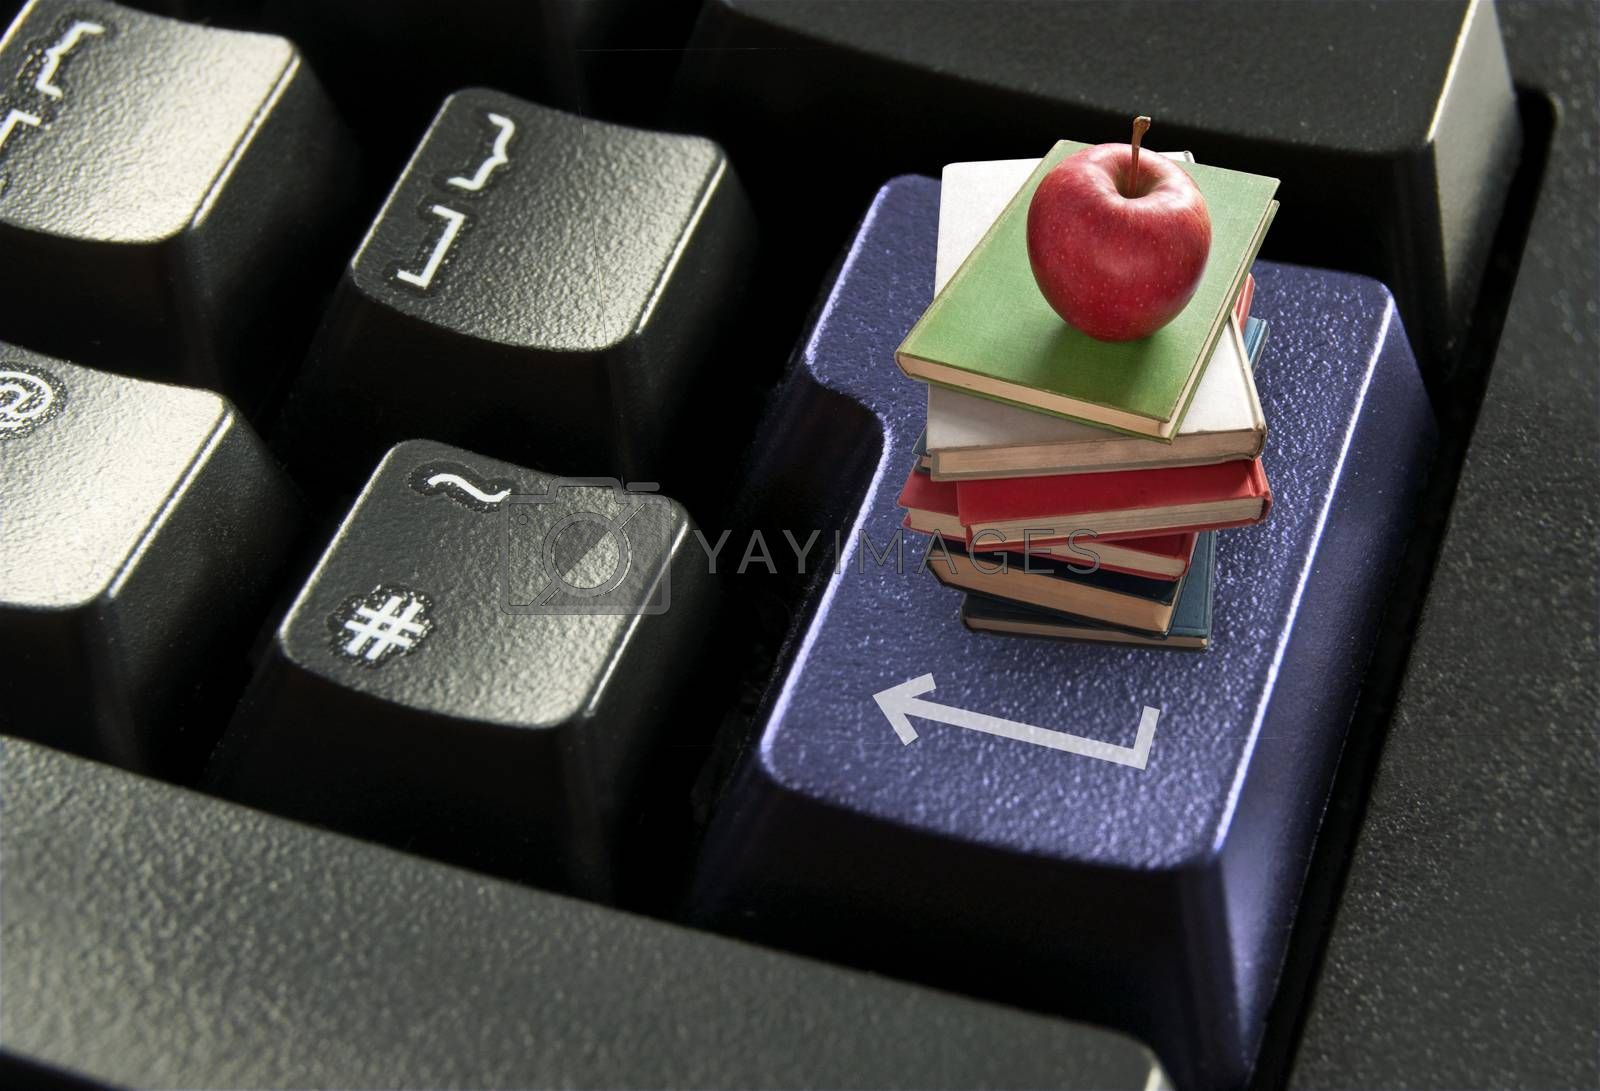 Stack of books with red apple on top of a computer enter key